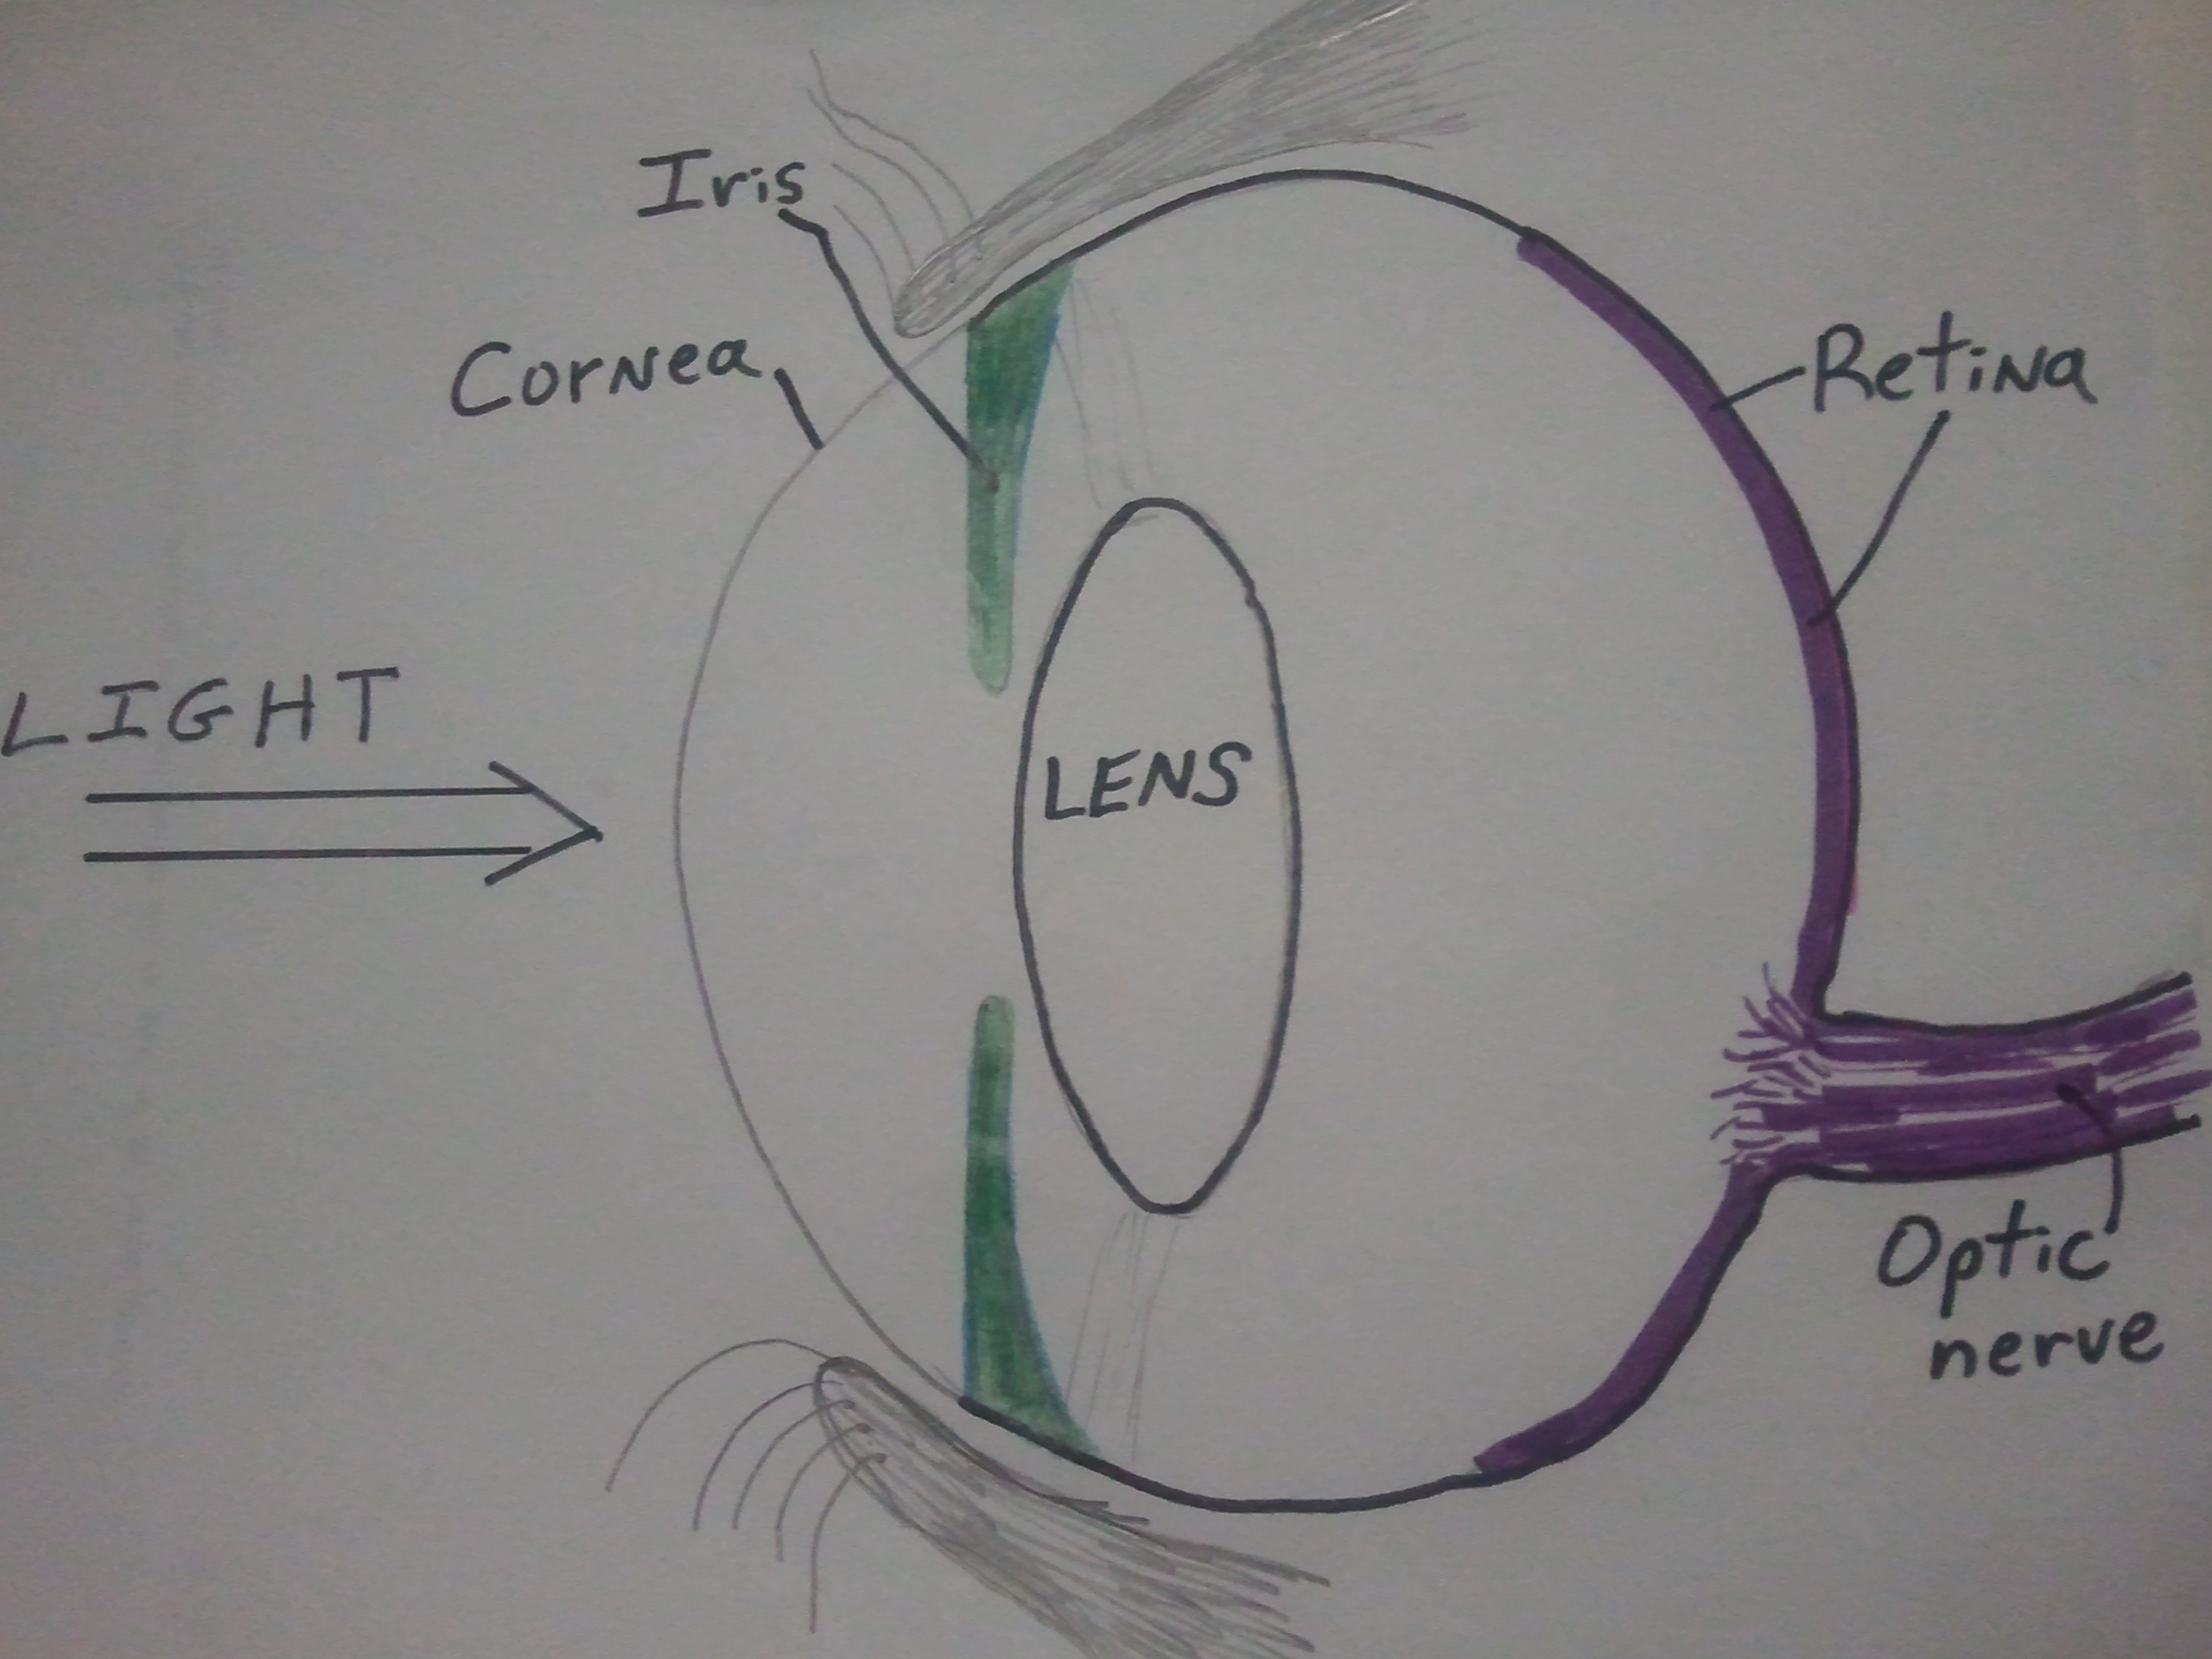 most blinds blindness cataracts can the eye vladimirfloyd cause common problems moreland eyecare